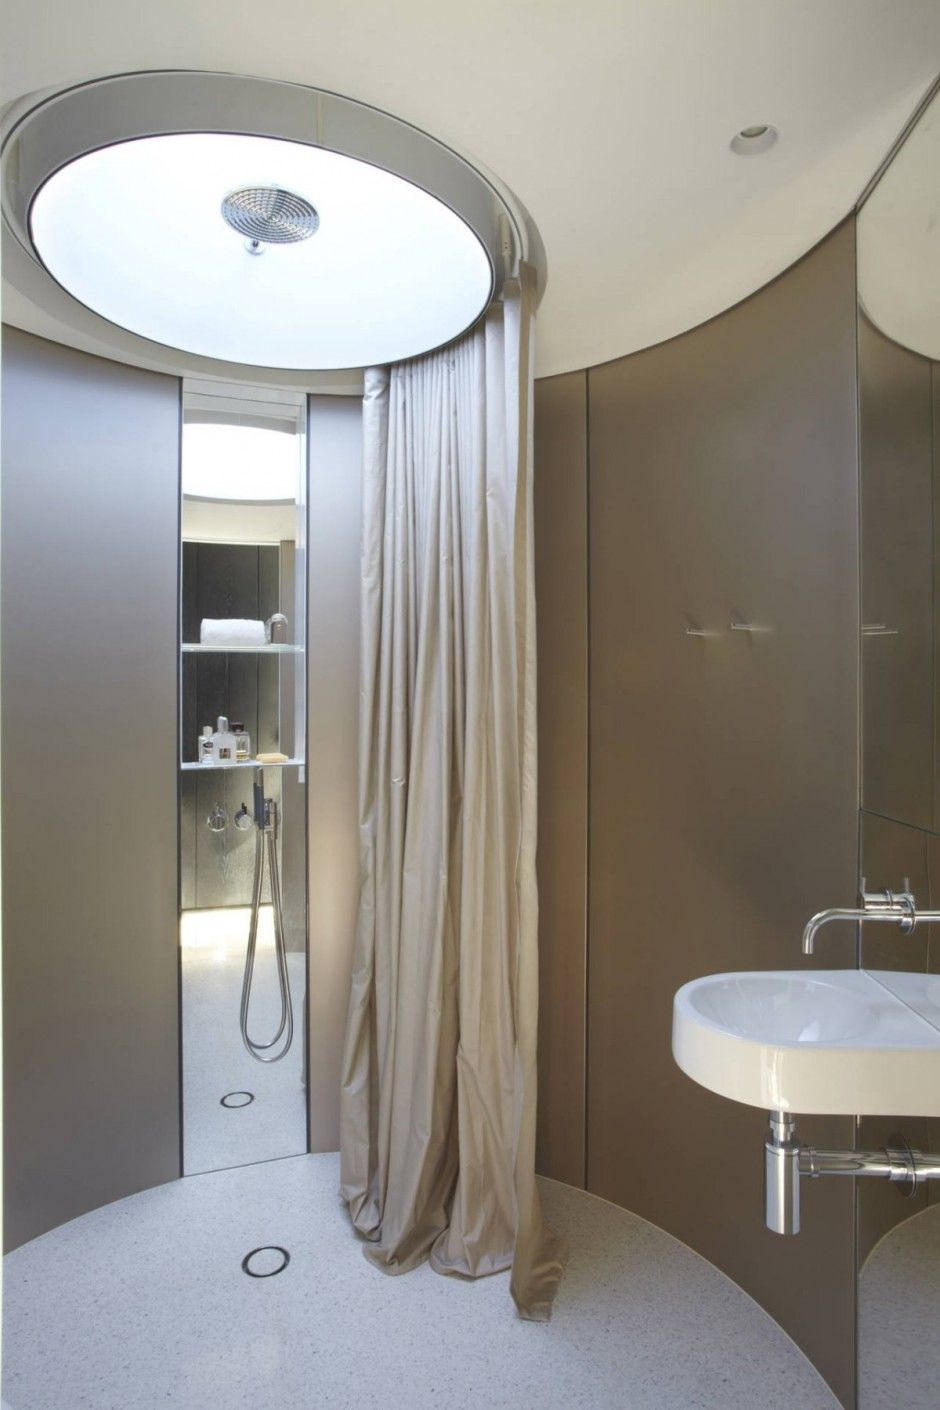 new bathroom images%0A Compact shower room